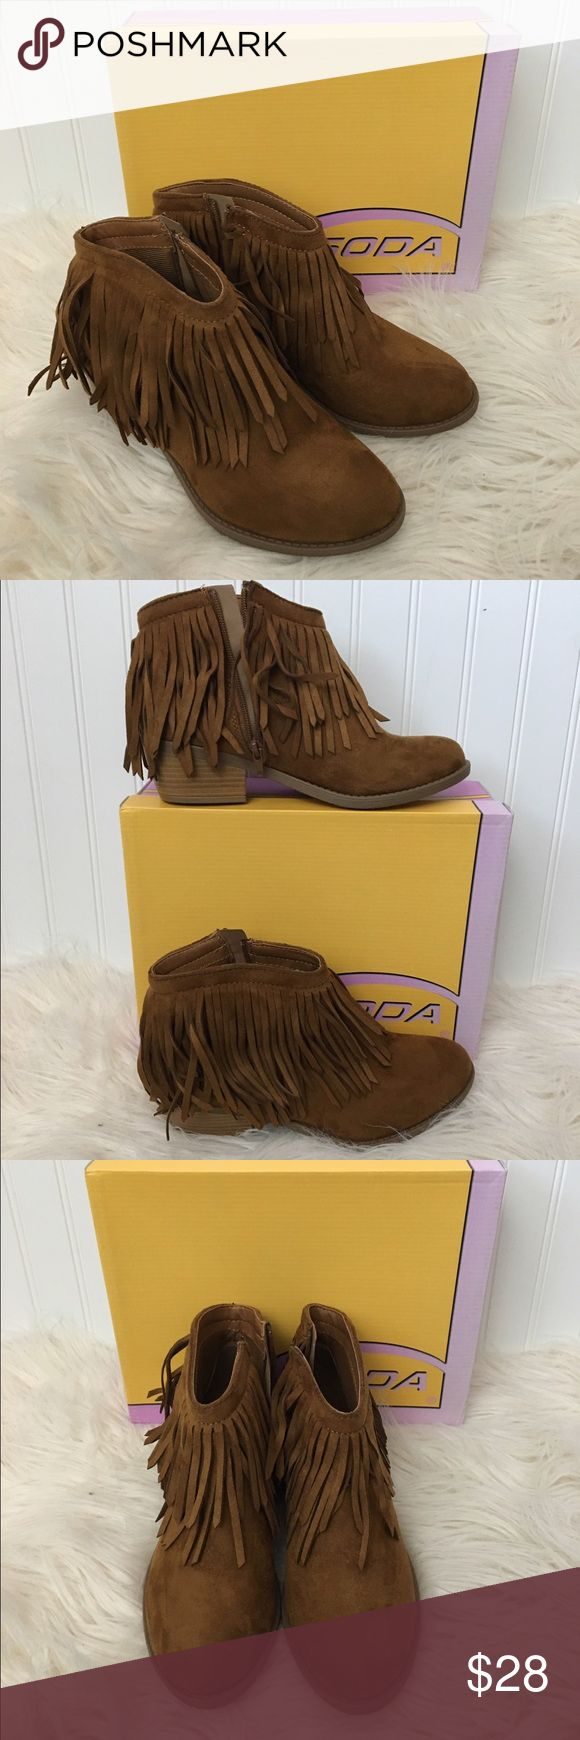 "Soda Fringe Ankle Boots Sz 9 Brand new, never worn. Purchased from the Red Dress Boutique. Faux suede. Fringe detail, side zipper. Slight heel (approx 1- 1.5""). Soda Shoes Ankle Boots & Booties"